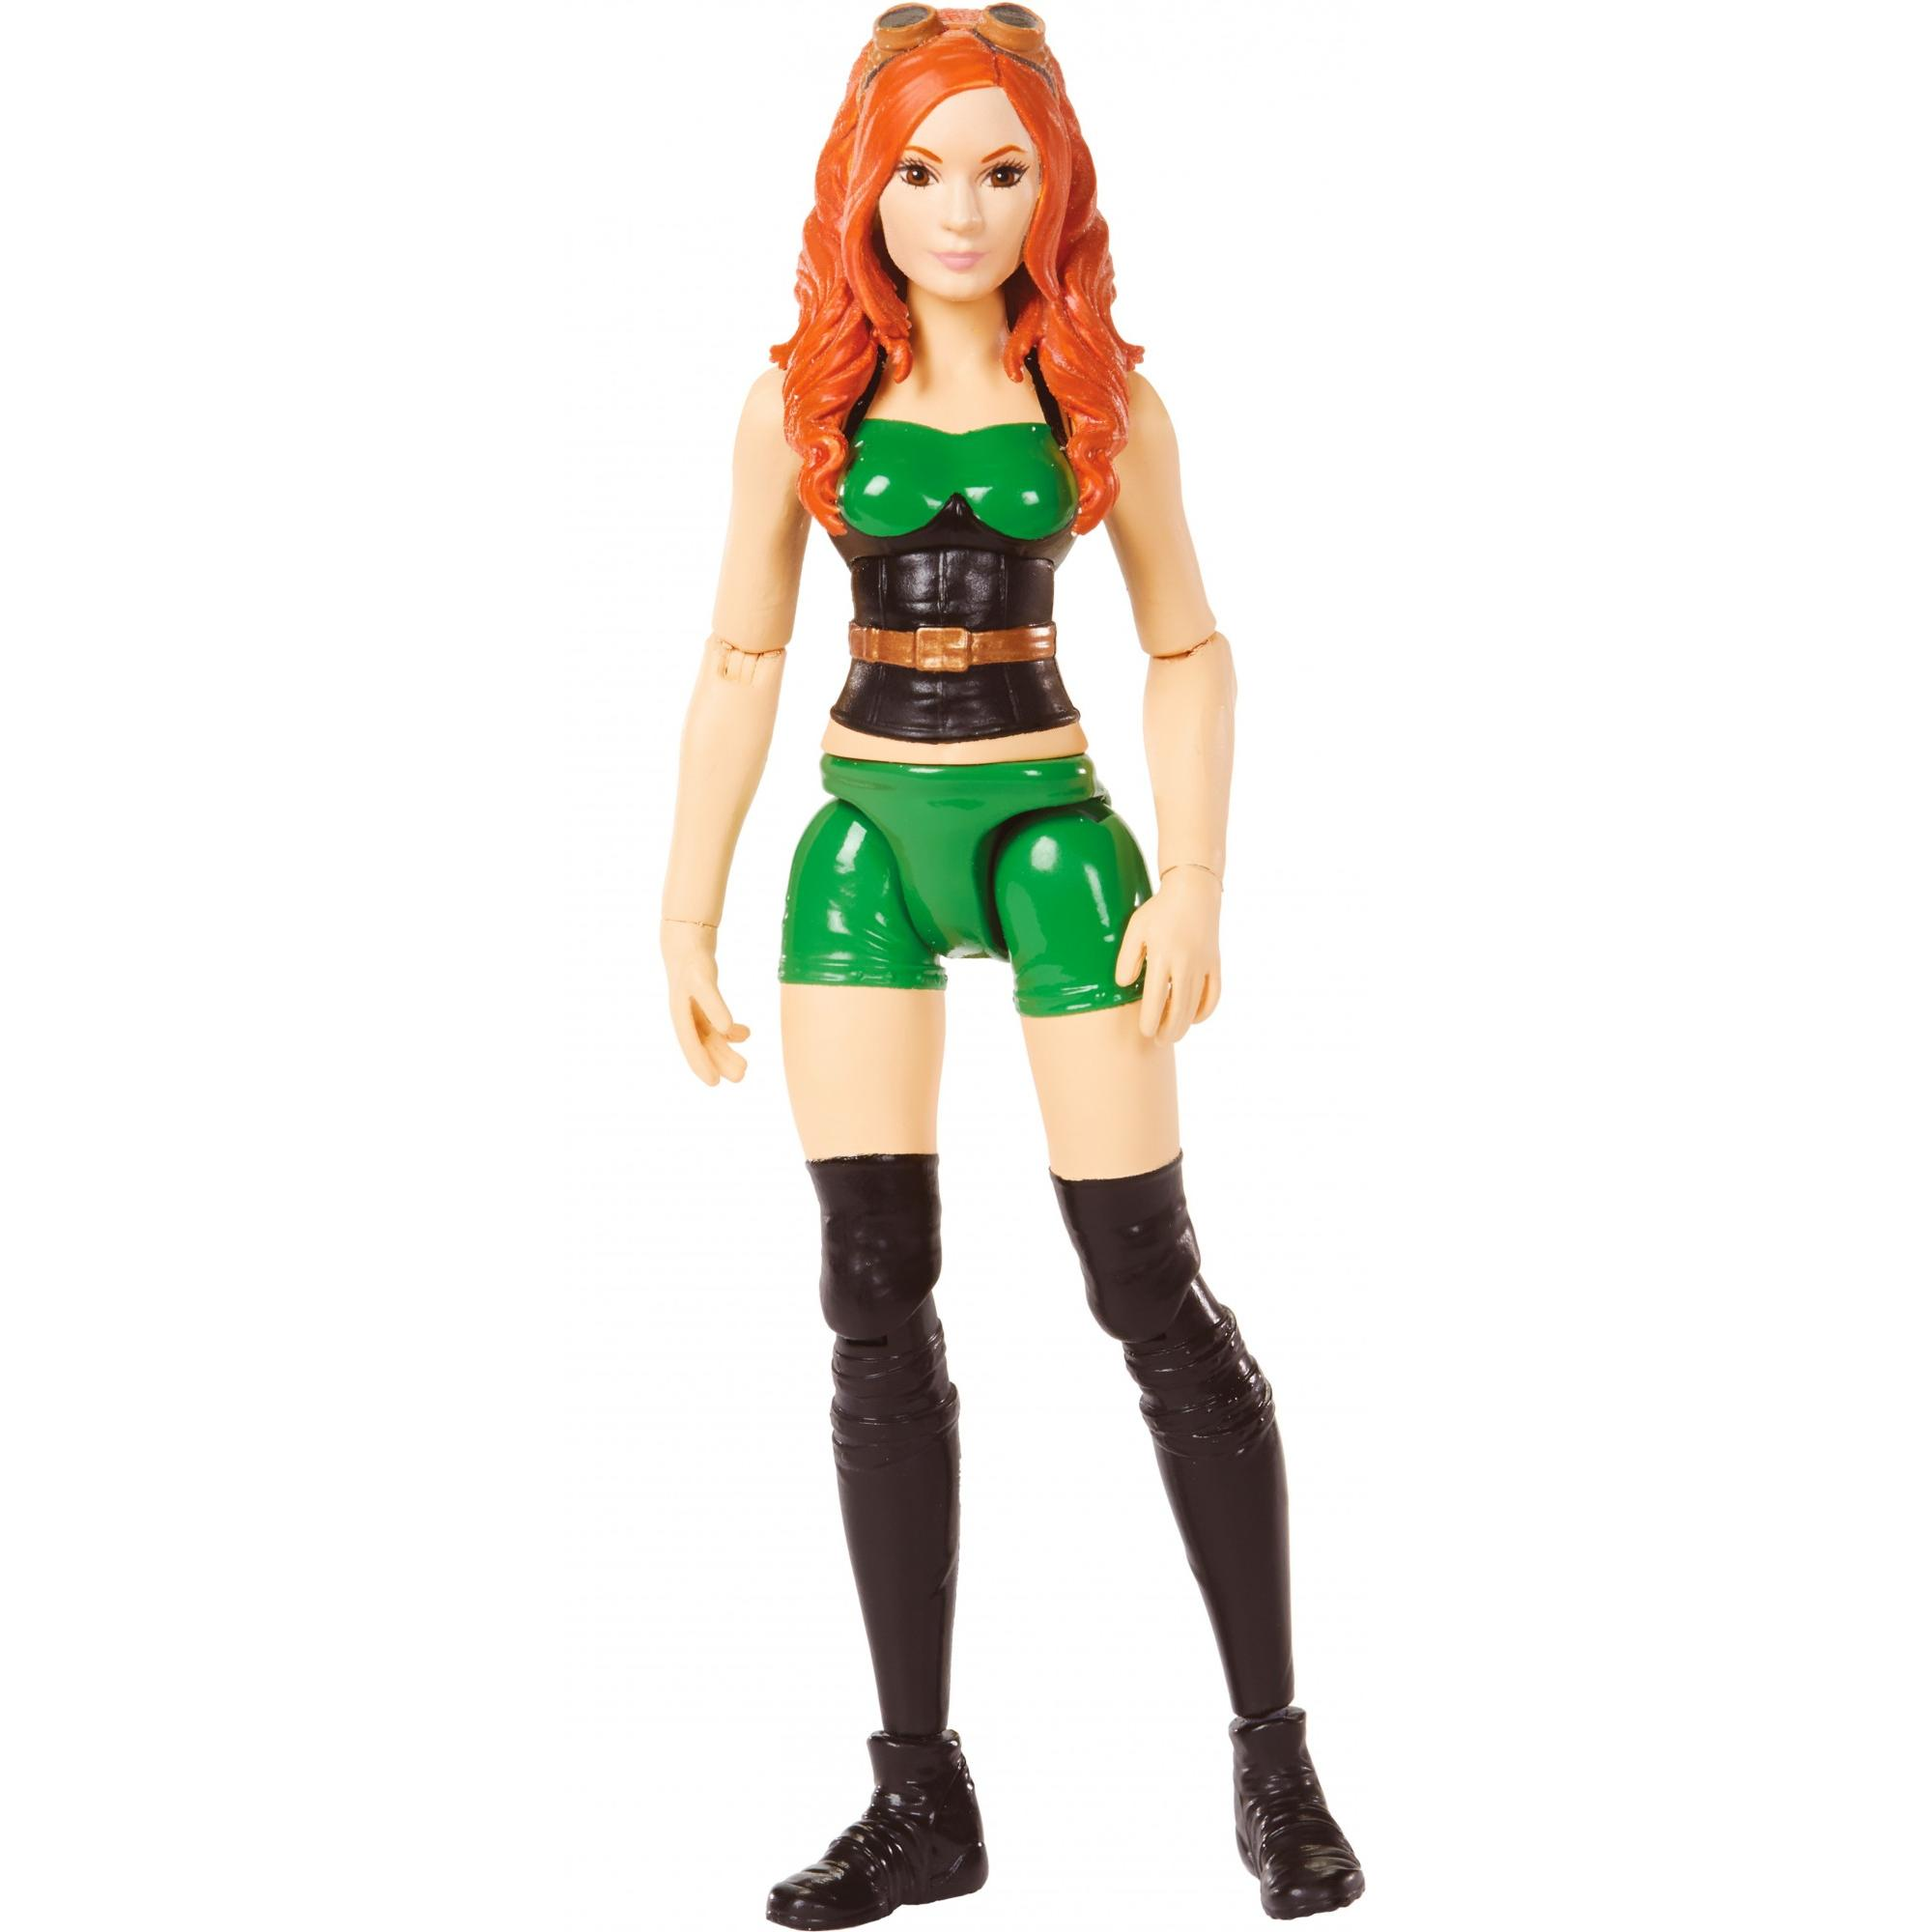 WWE Superstars Becky Lynch 6-inch Posable Action Figure